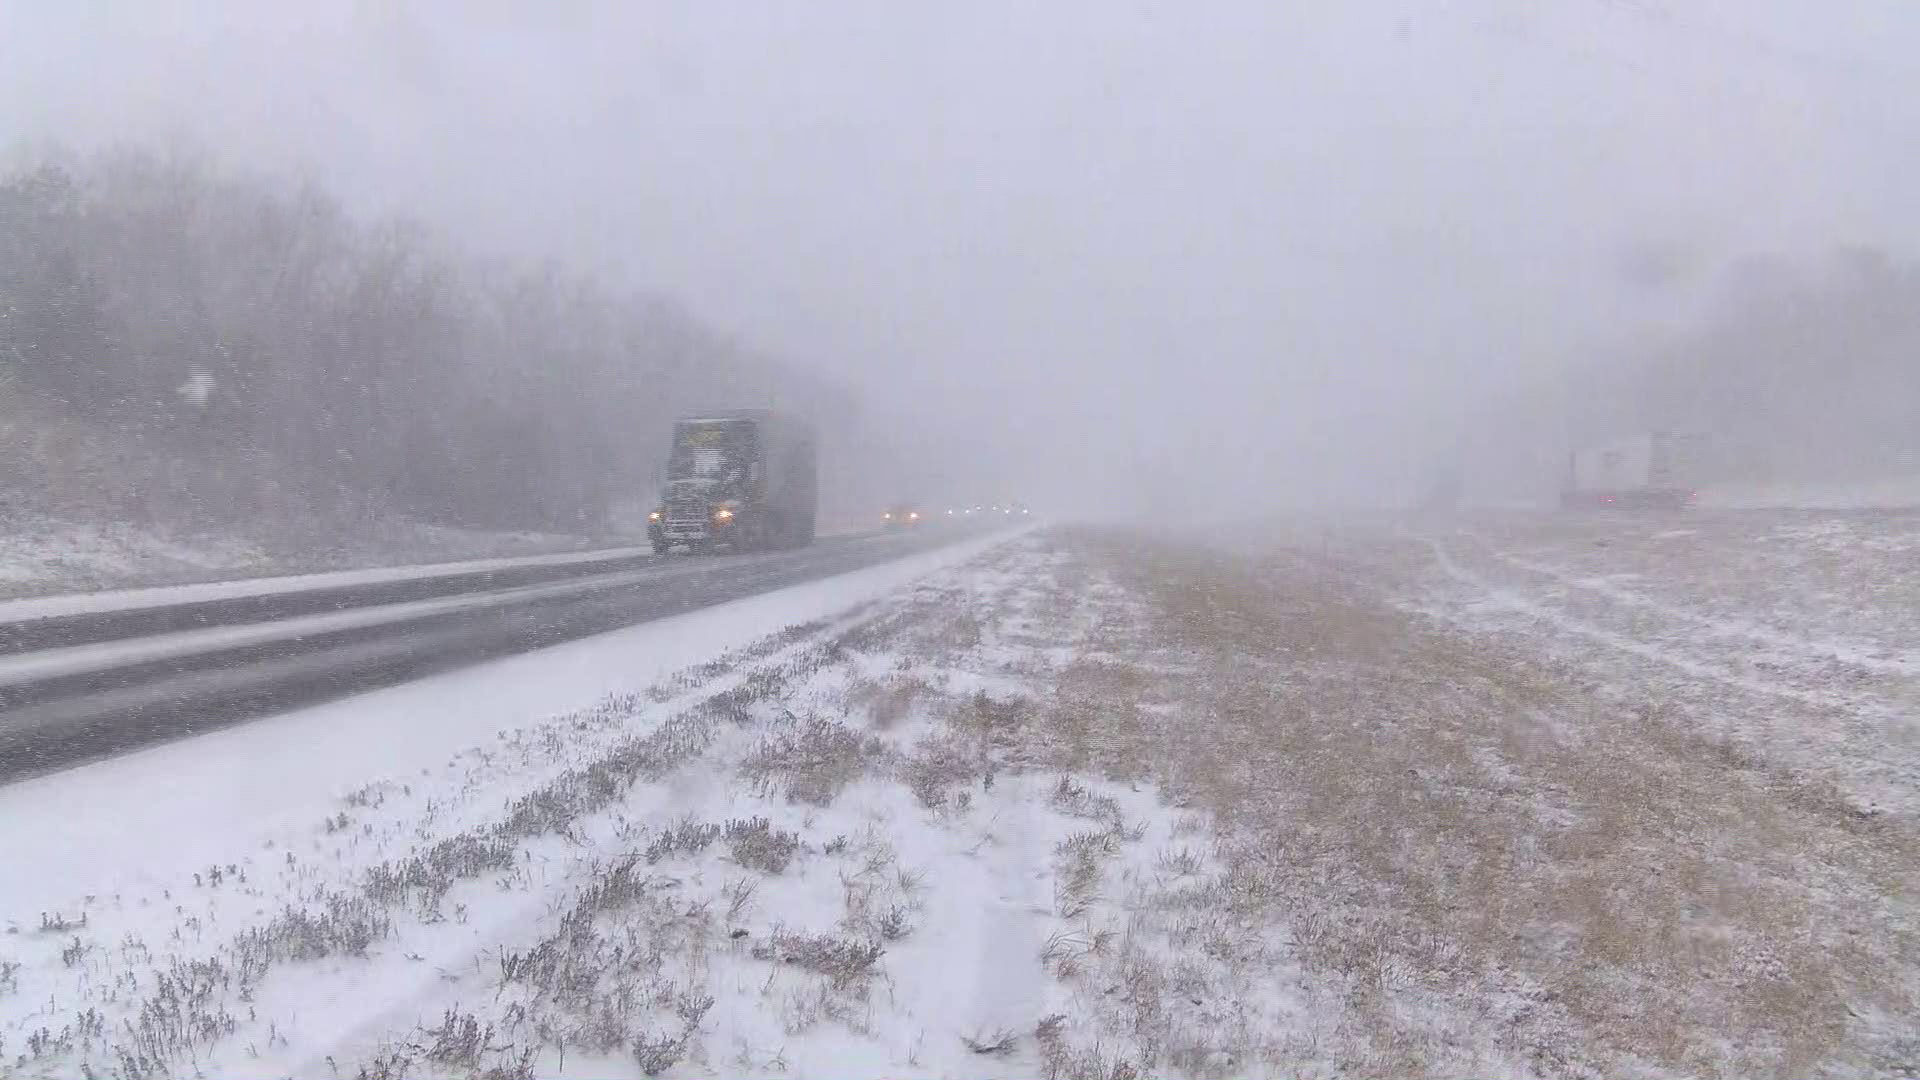 Snow squall causes bad road conditions